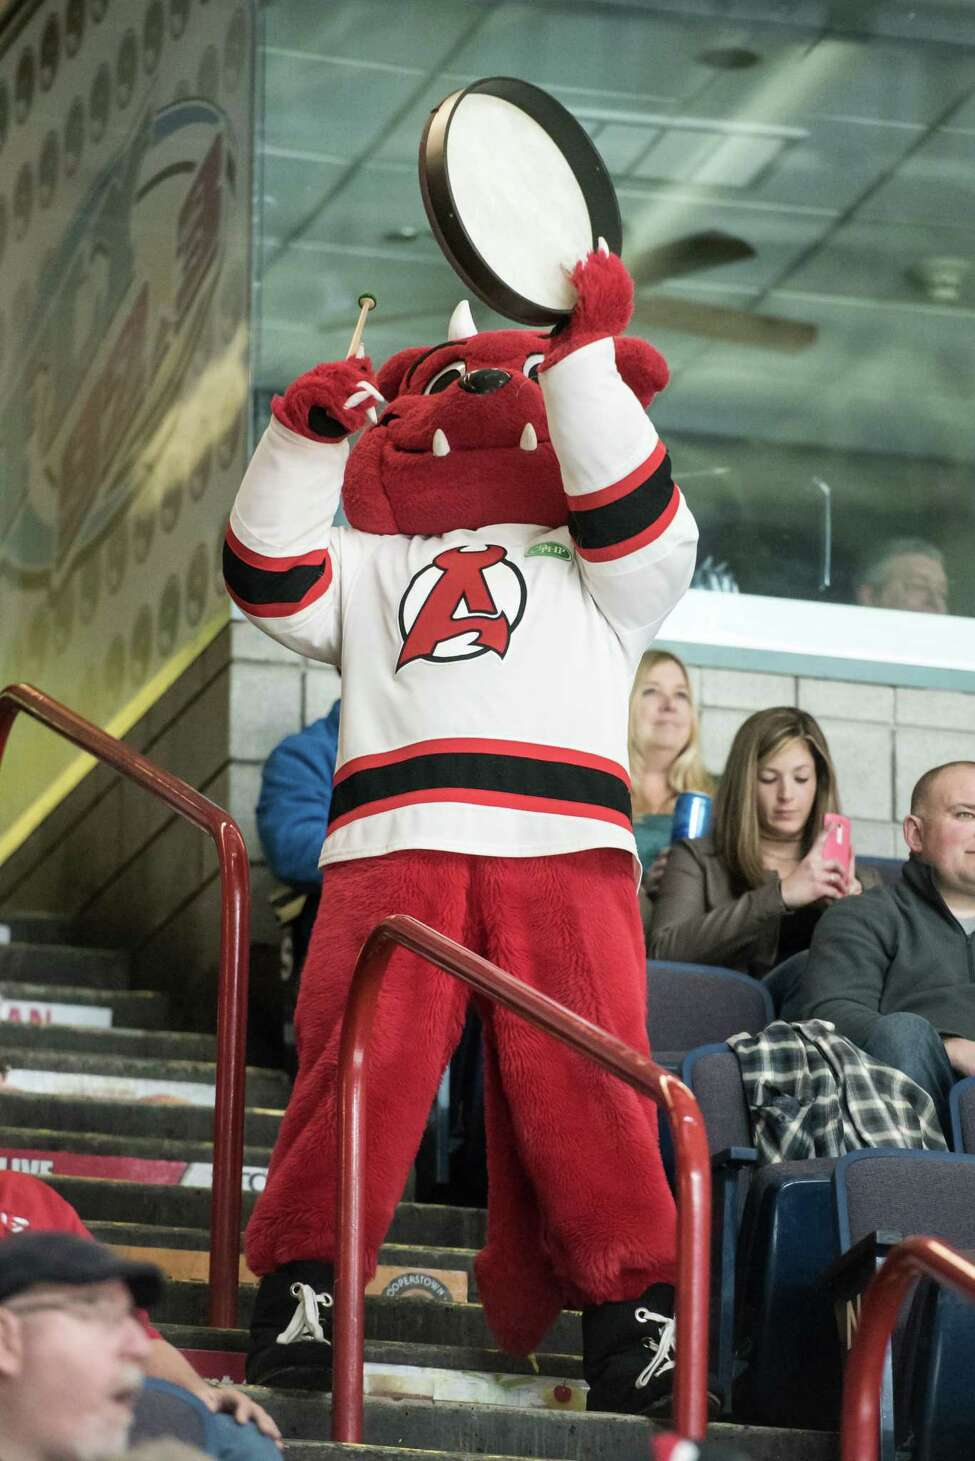 Devil Dawg tries to rally fans while the Albany Devils play against the Toronto Marlies at the Times Union Center in Albany, NY Saturday April 22nd, 2017. Photo By Eric Jenks